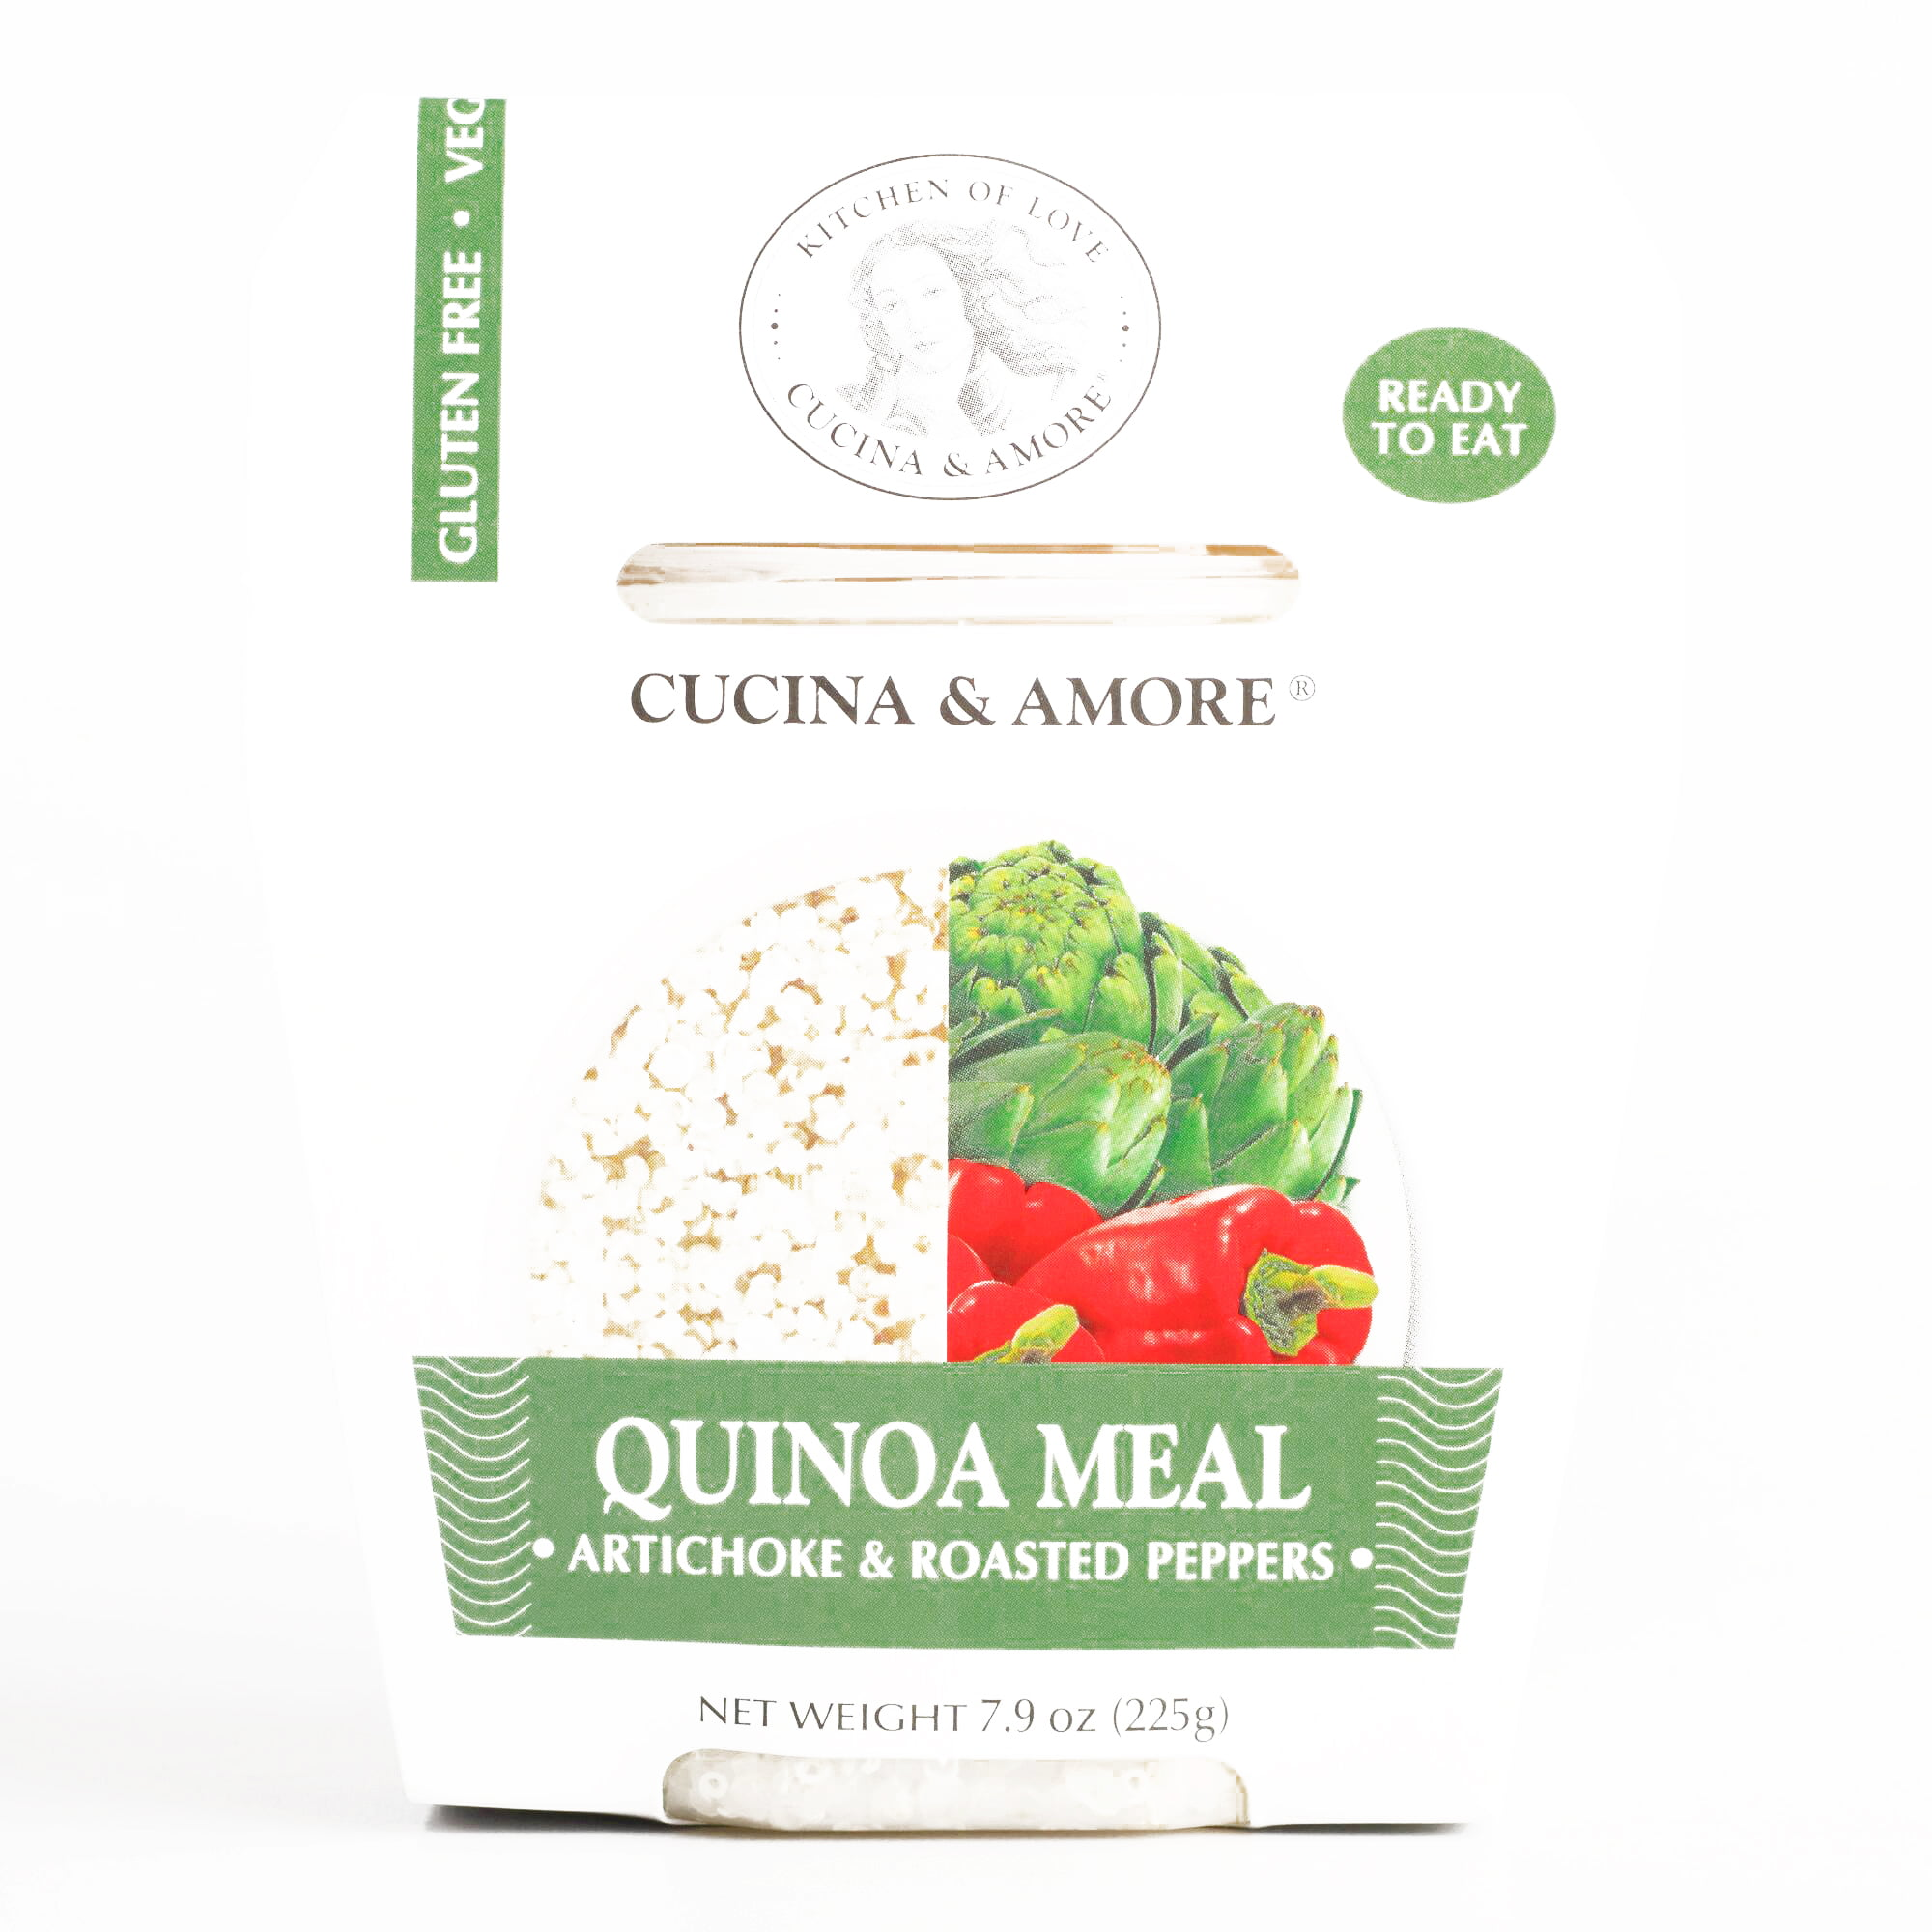 Cucina and Amore Artichoke and Roasted Peppers Quinoa Meal \t7.9 oz each (6 Items Per... by